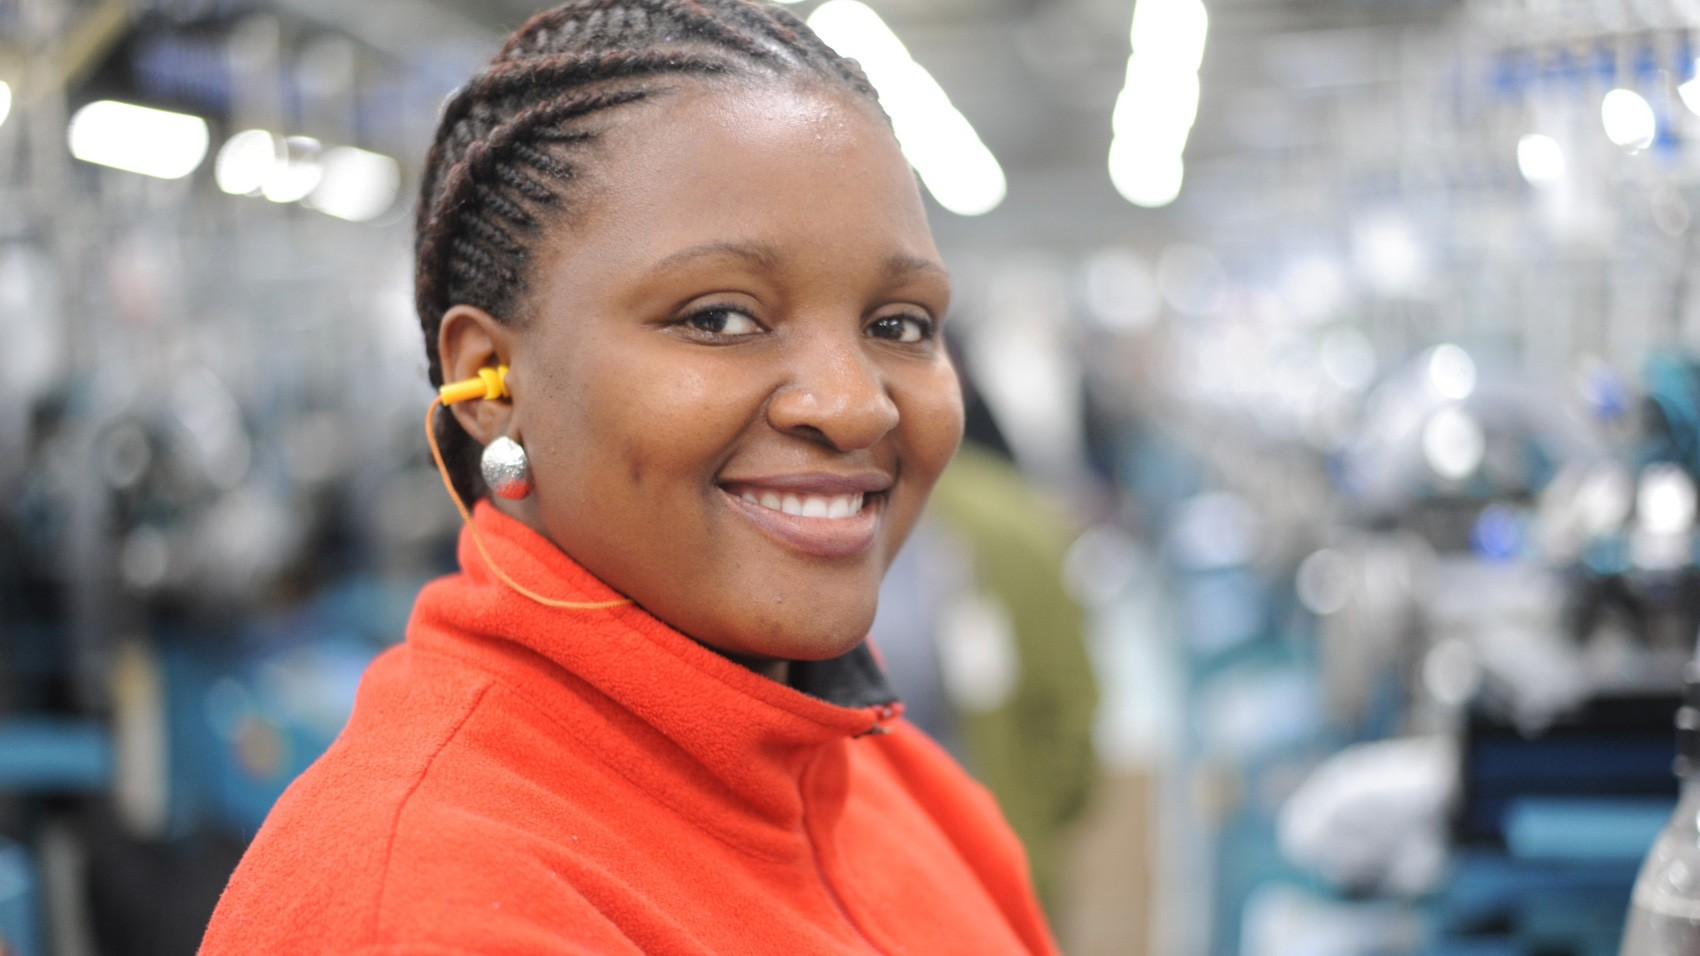 Supplier Opportunity/south-african-worker.jpg